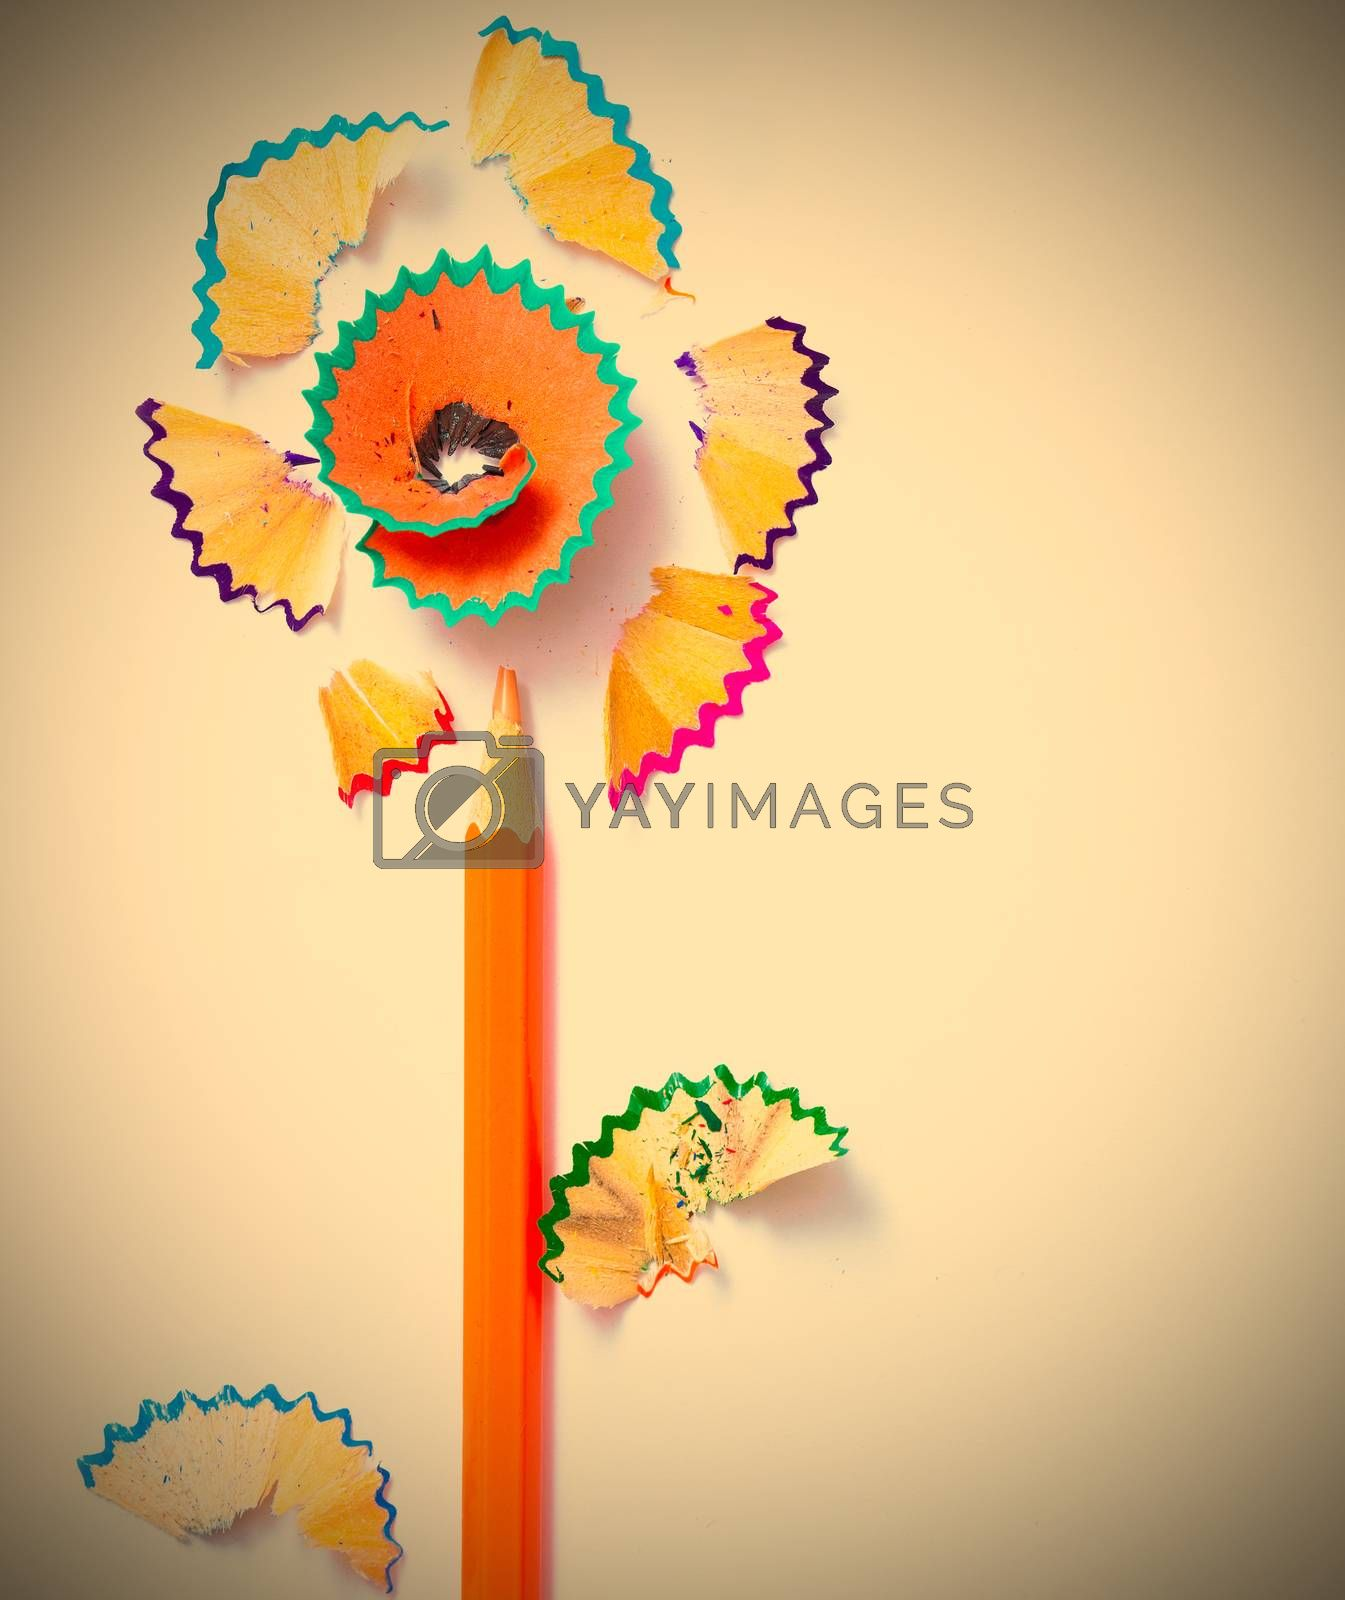 colored flower pencil on white background. instagram image retro style